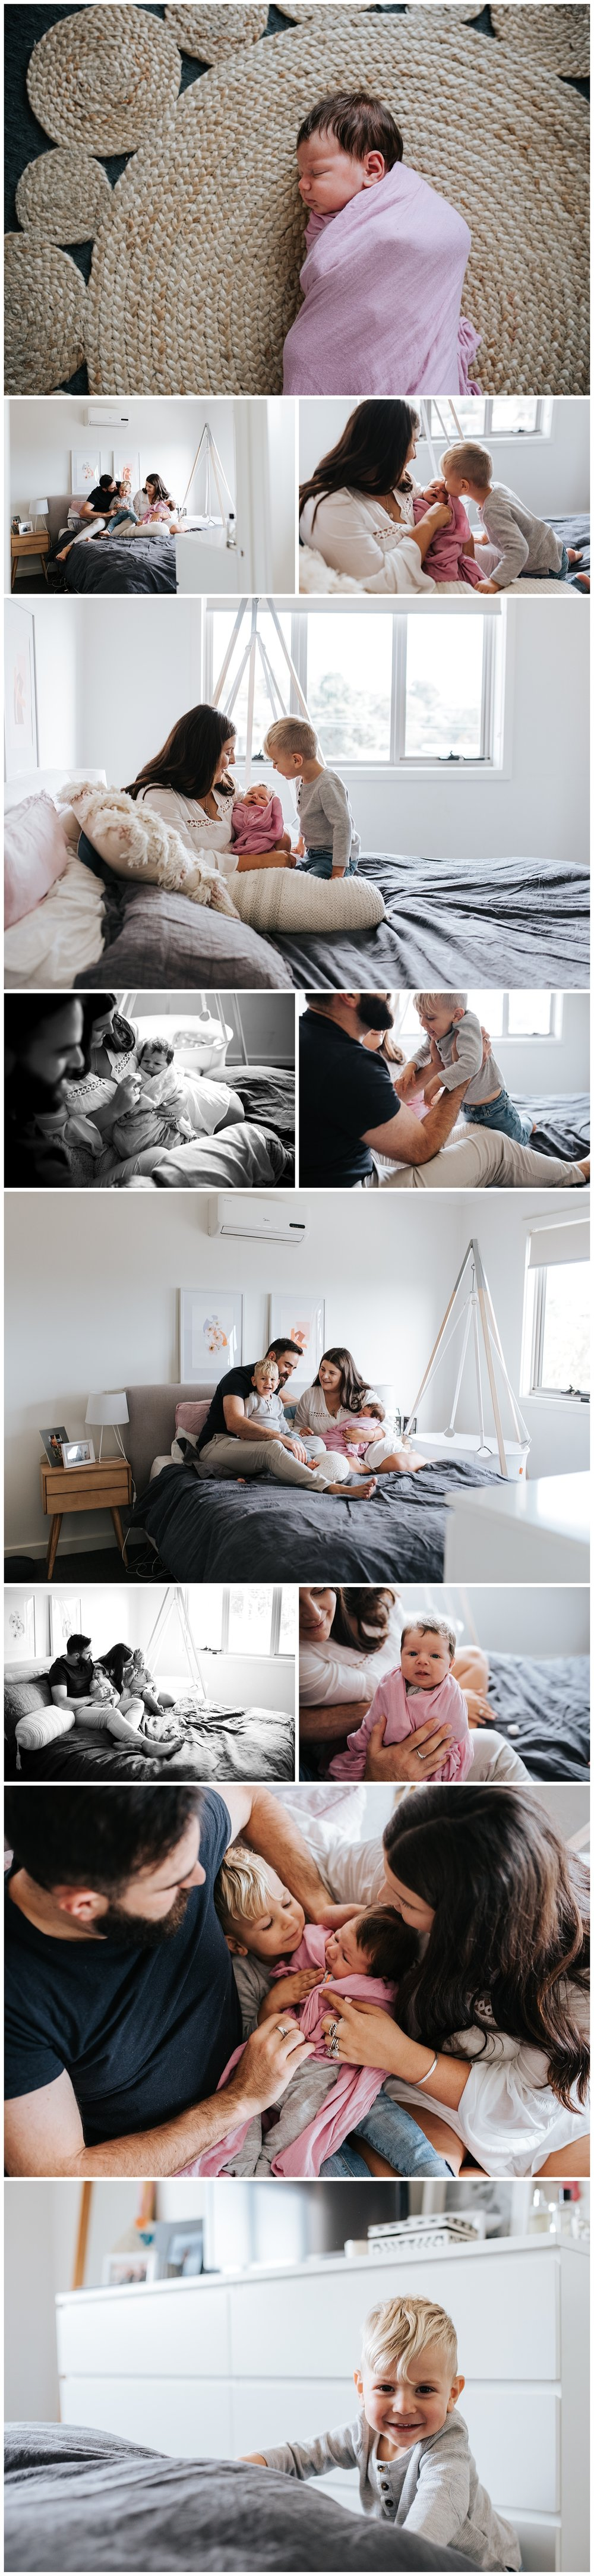 camberwell newborn photographer melbourne